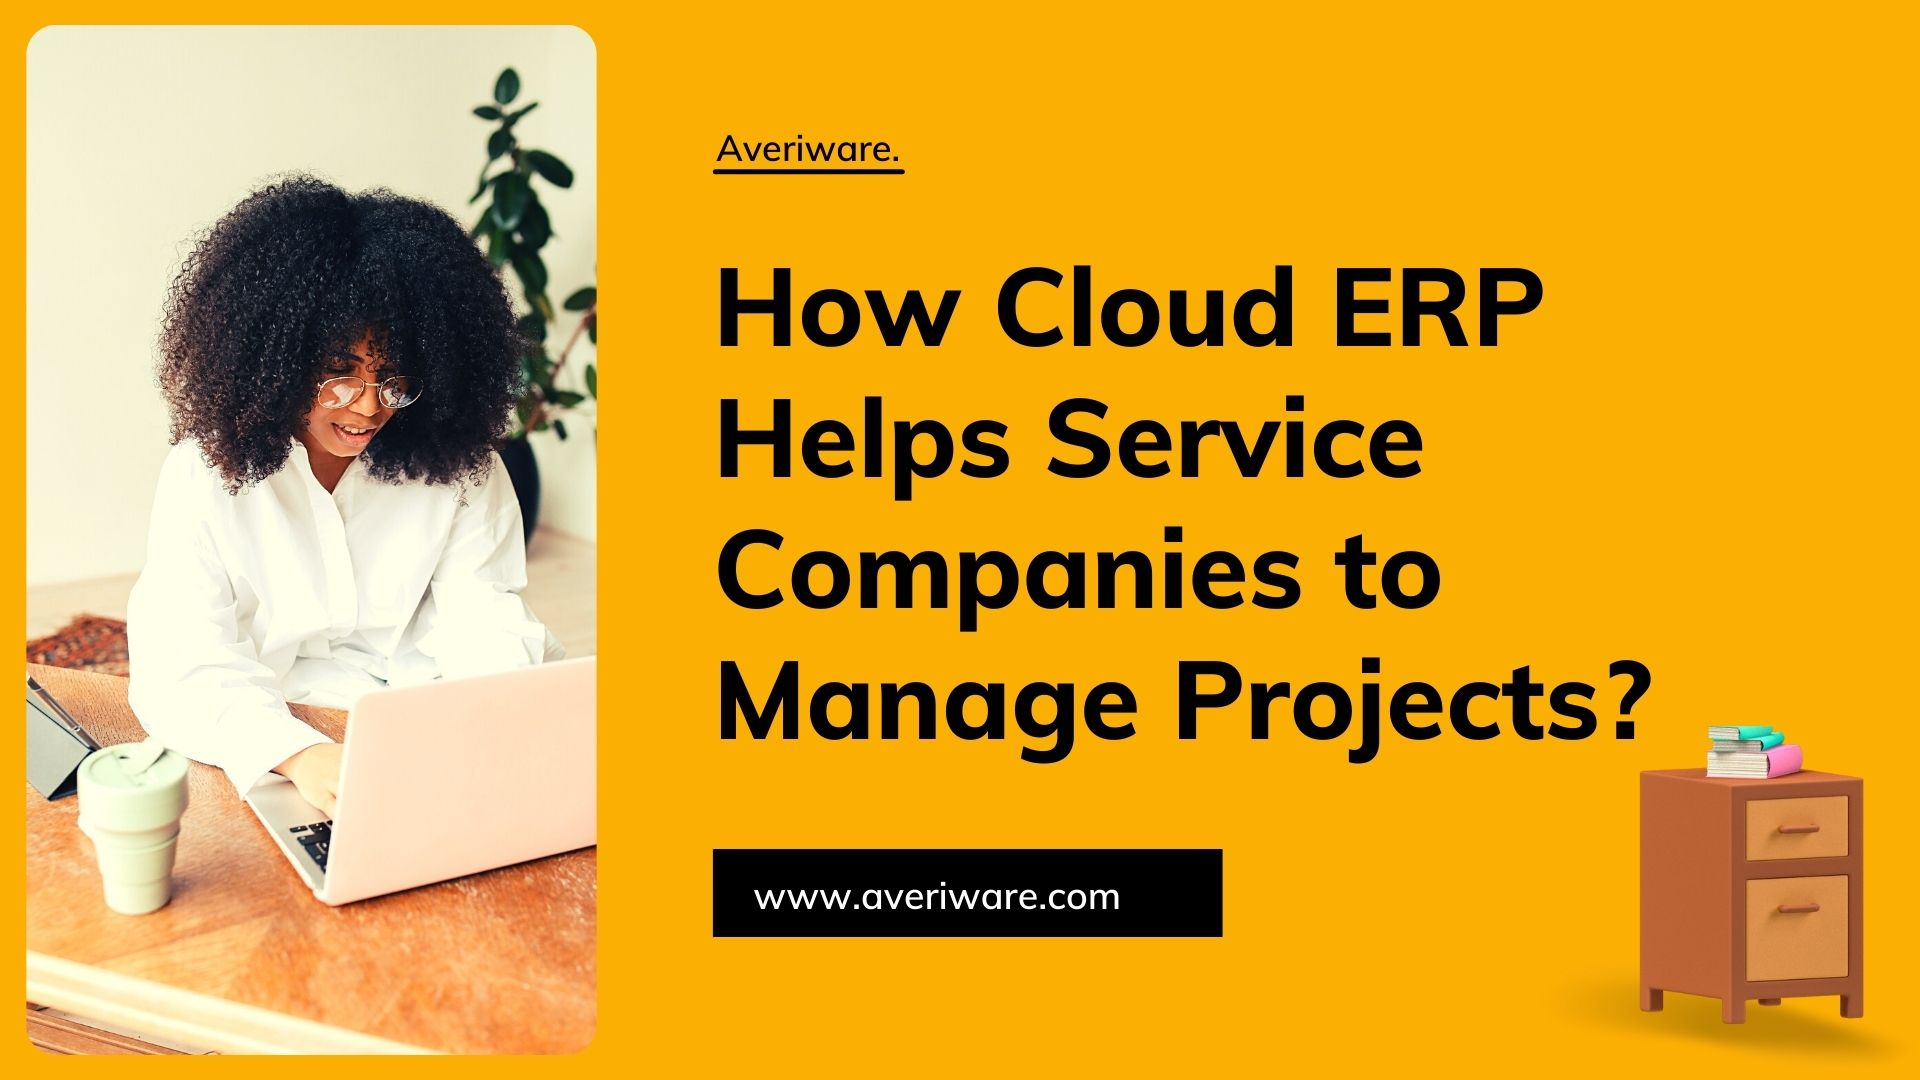 How-Cloud-ERP-Helps-Service-Companies-to-Manage-Projects